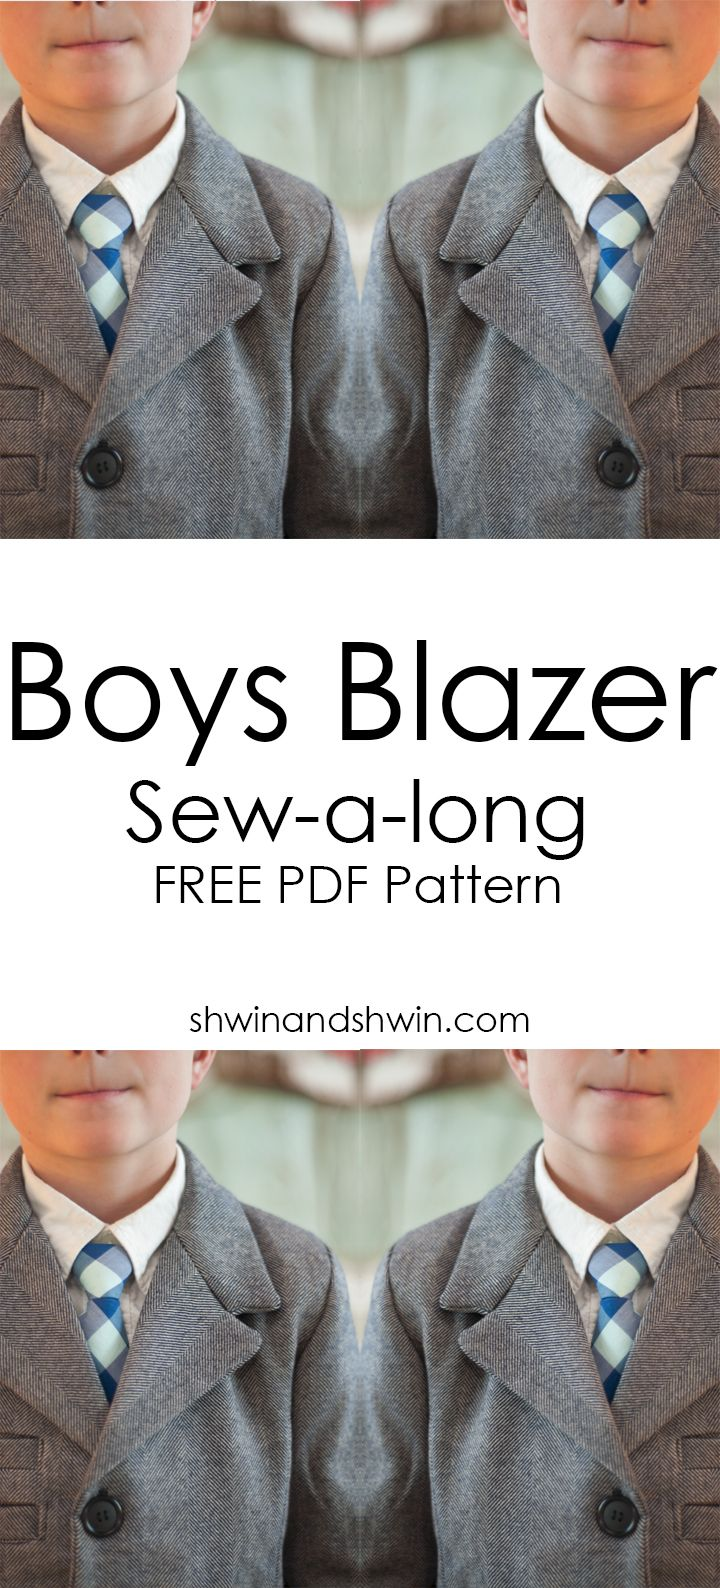 Boys Blazer Sew-a-long Fabric and Pattern choices || schwinandschwin.com